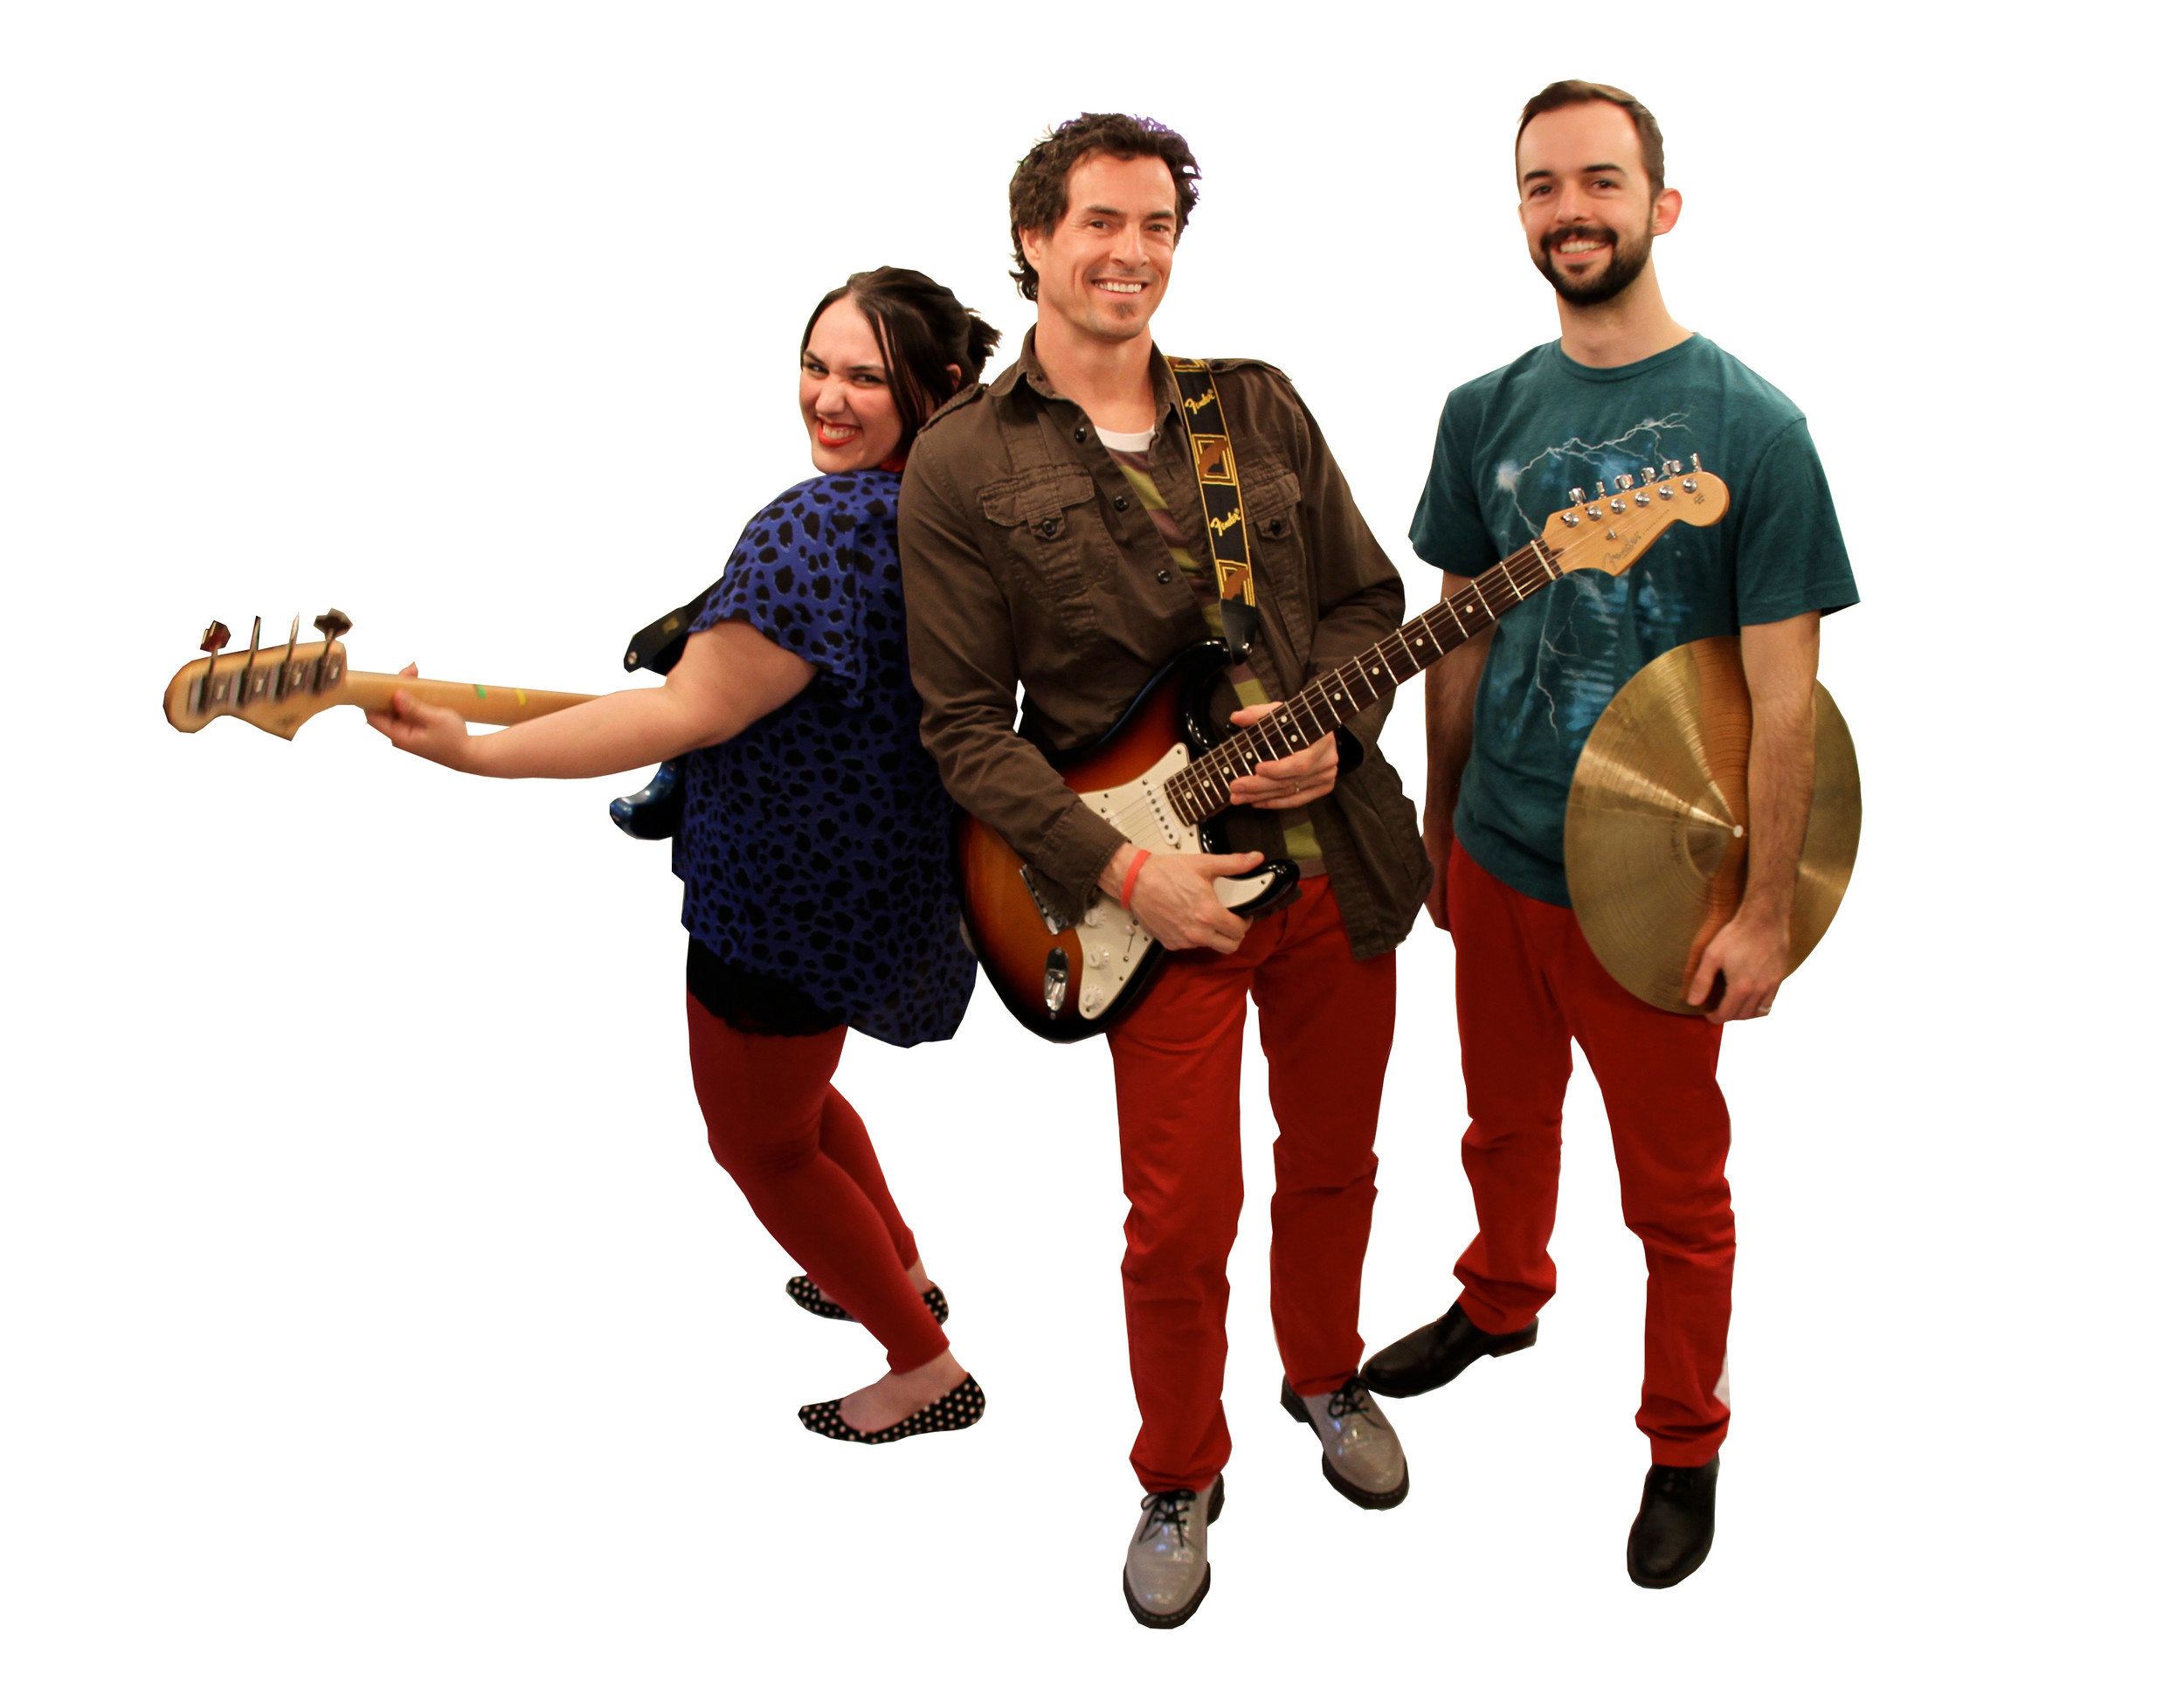 Frontman Danny Weinkauf, center, and his Red Pants band members Tina Kenny Jones (vocals, bass) and Steve Plesnarski (drums) are set to release their third album.